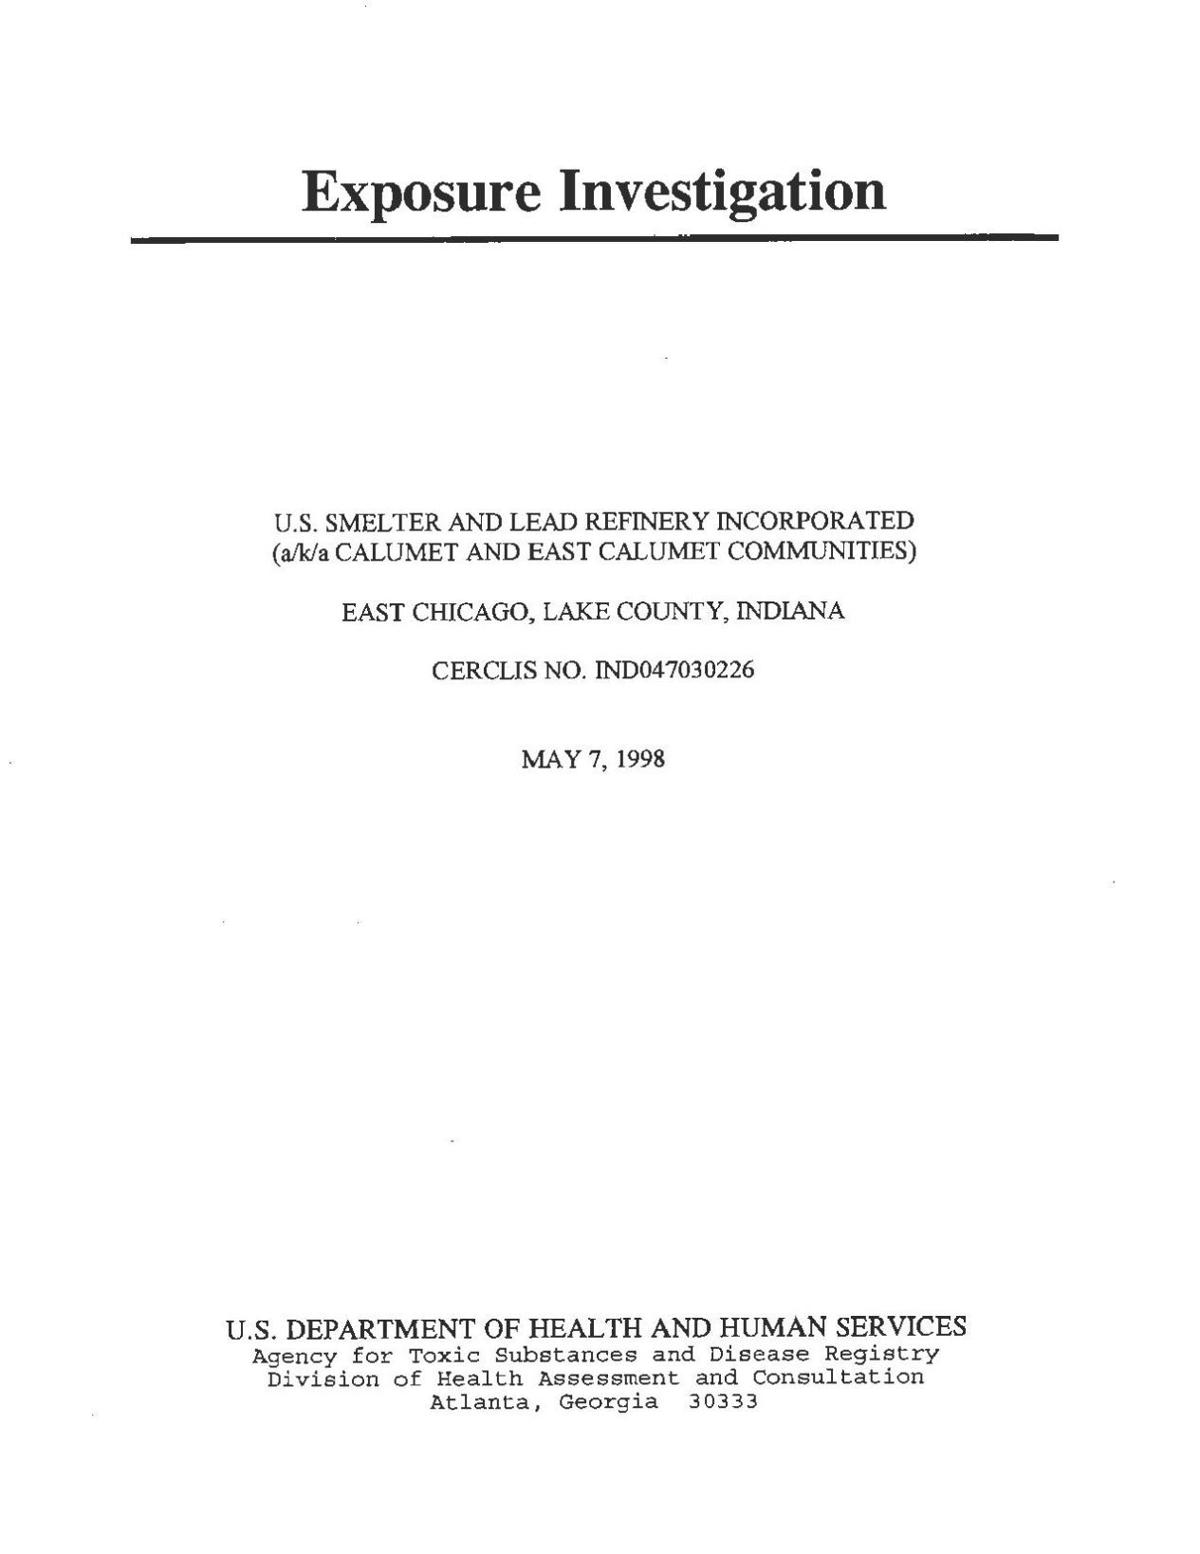 1998 ATSDR Exposure Investigation